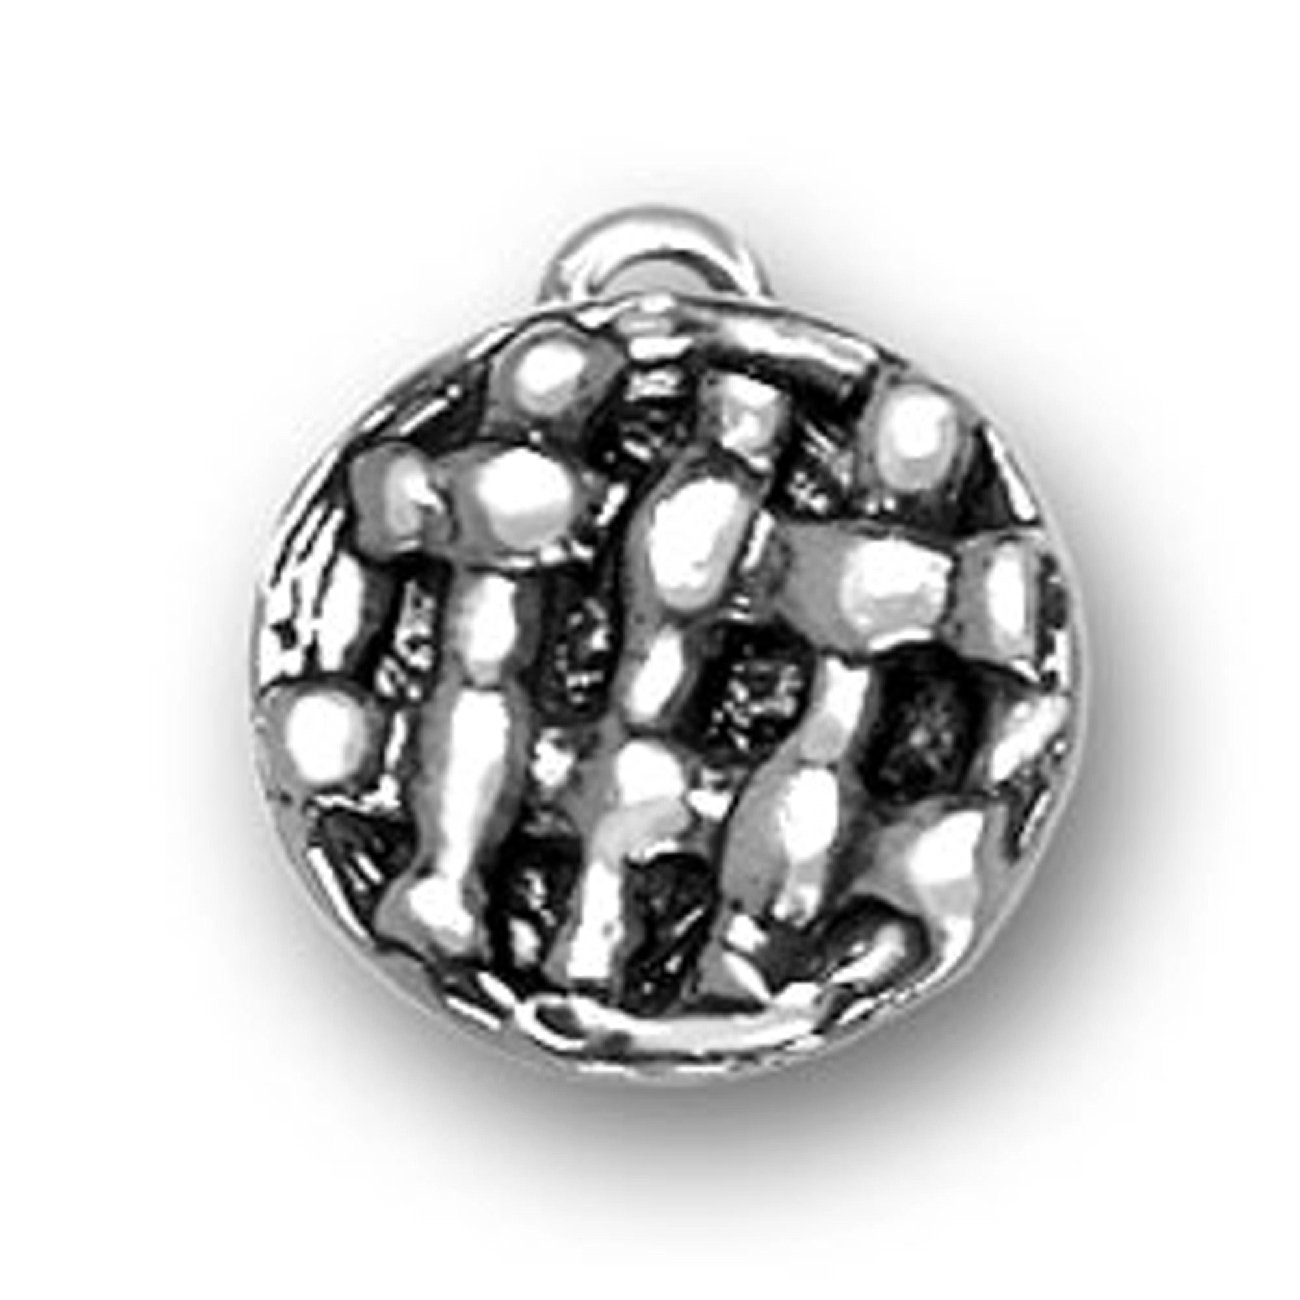 Sterling Silver 3D Kitchen Criss Cross Layered Pie Cooking Charm